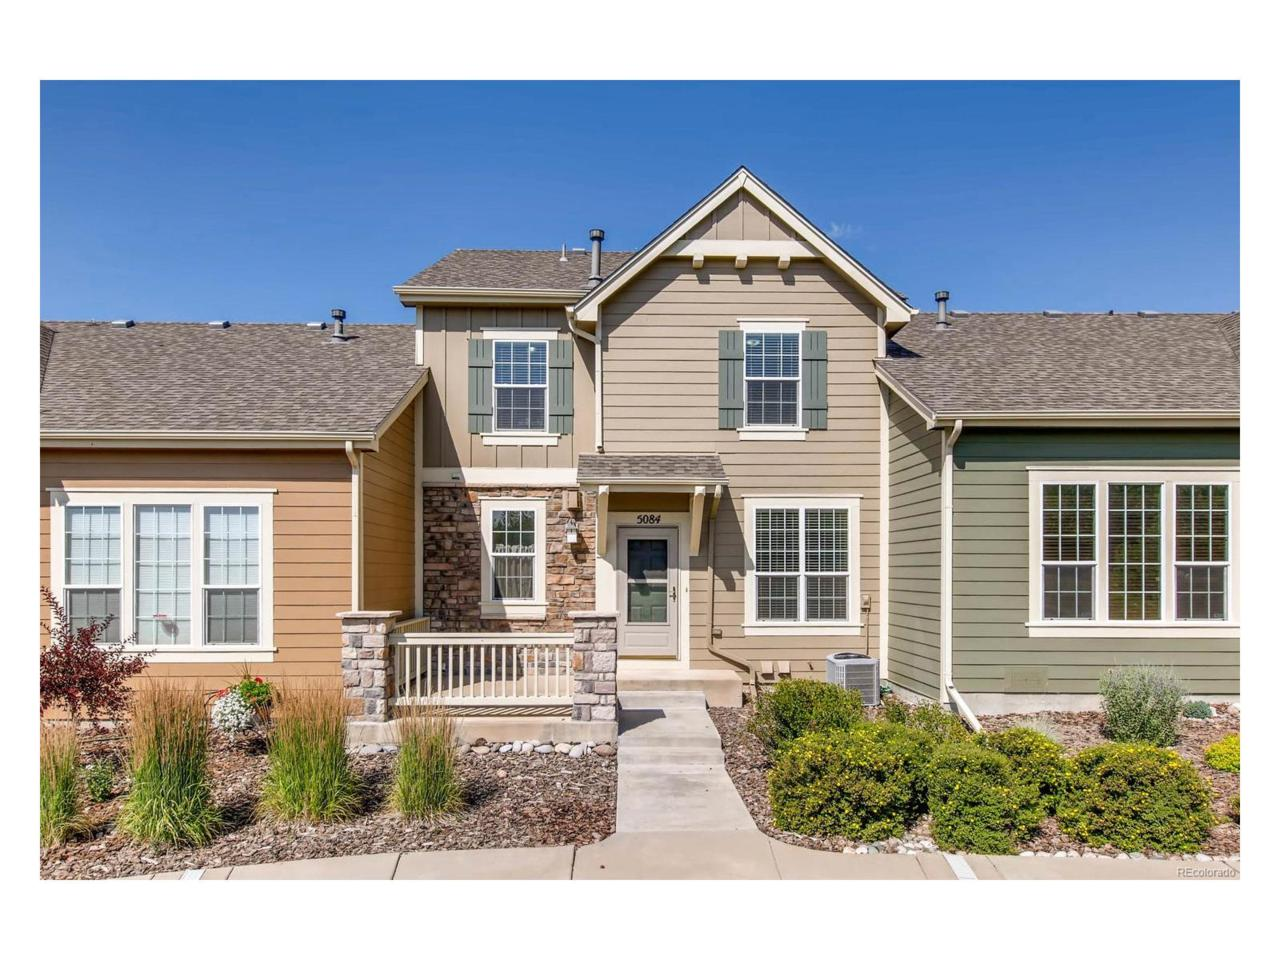 5084 Diamond Sky Road, Castle Rock, CO 80108 (MLS #7077763) :: 8z Real Estate